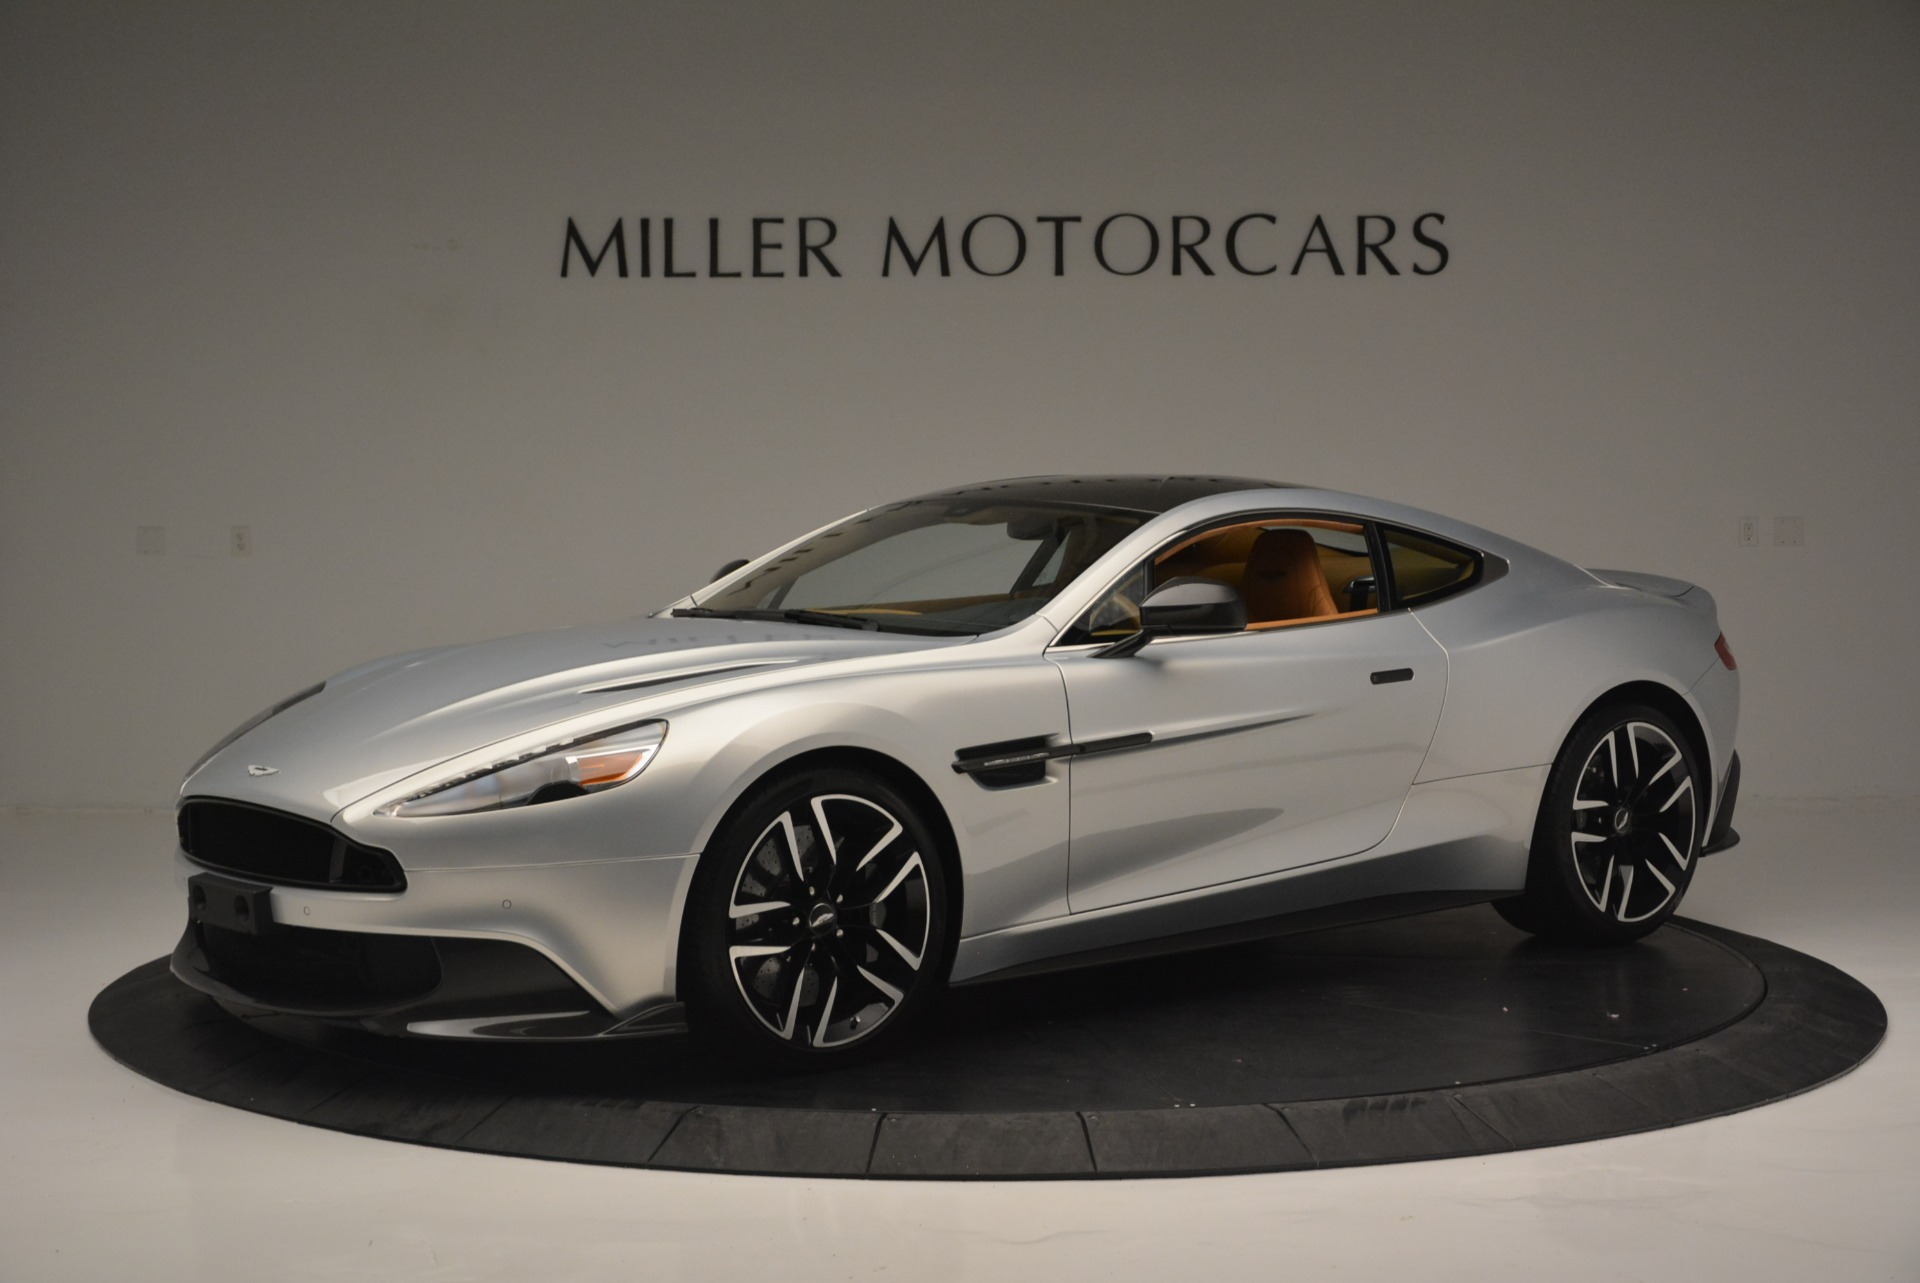 Used 2018 Aston Martin Vanquish S Coupe for sale $199,900 at Bentley Greenwich in Greenwich CT 06830 1